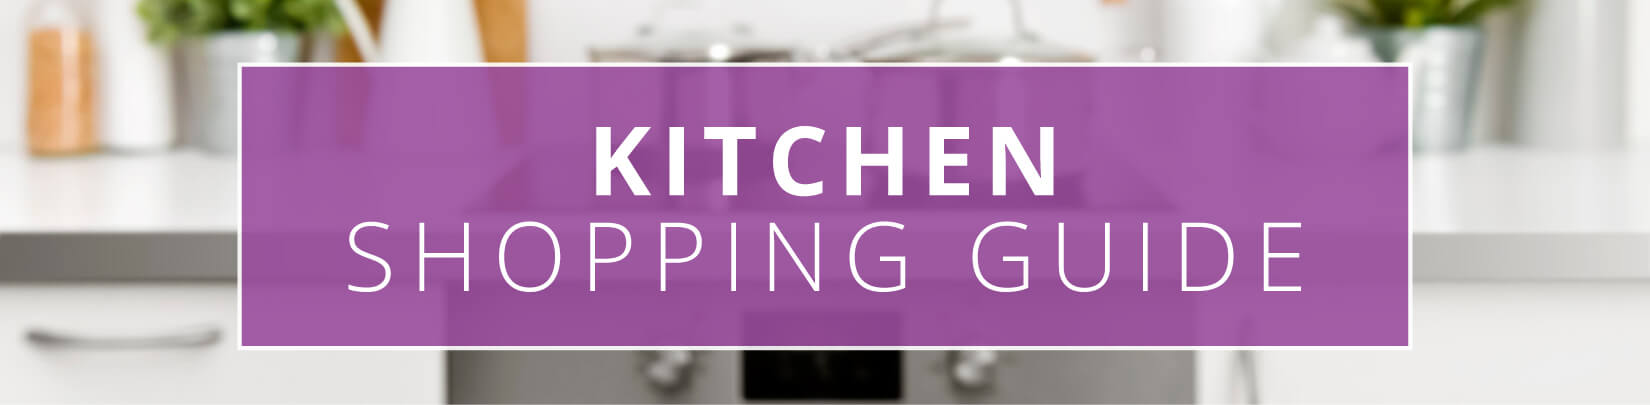 Must-Have Kitchen Items for Healthy, Happy Living